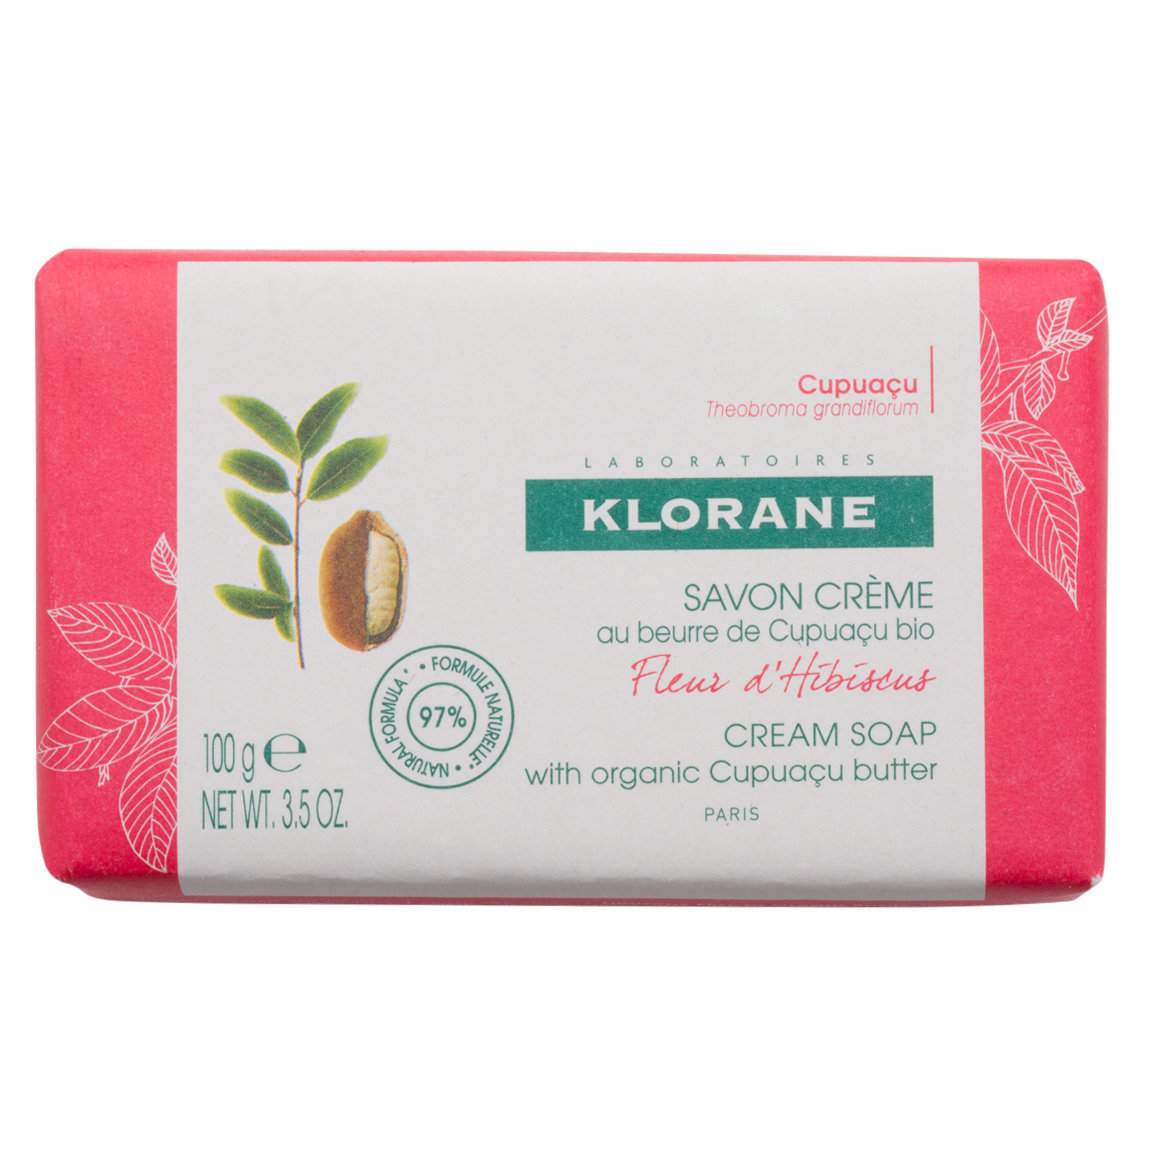 Klorane Hibiscus Flower Cream Soap with Cupuaçu Butter product swatch.